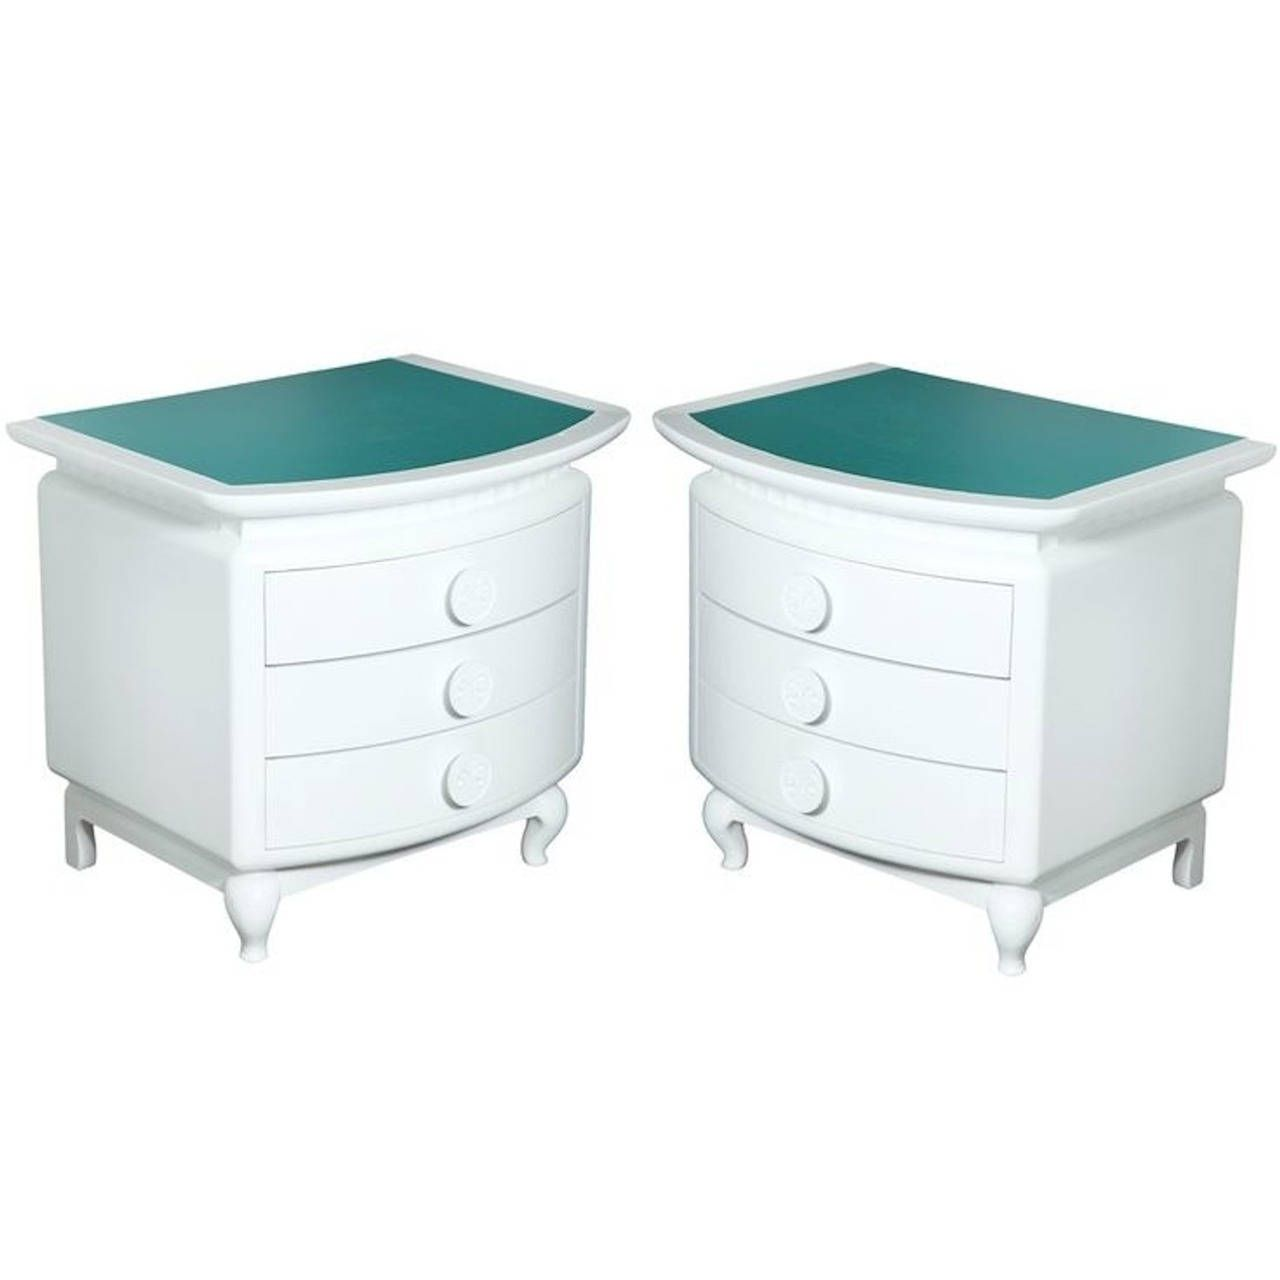 Pair Of Three Drawer Morris Lapidus Nightstands From Eden Roc Hotel, Miami  | From